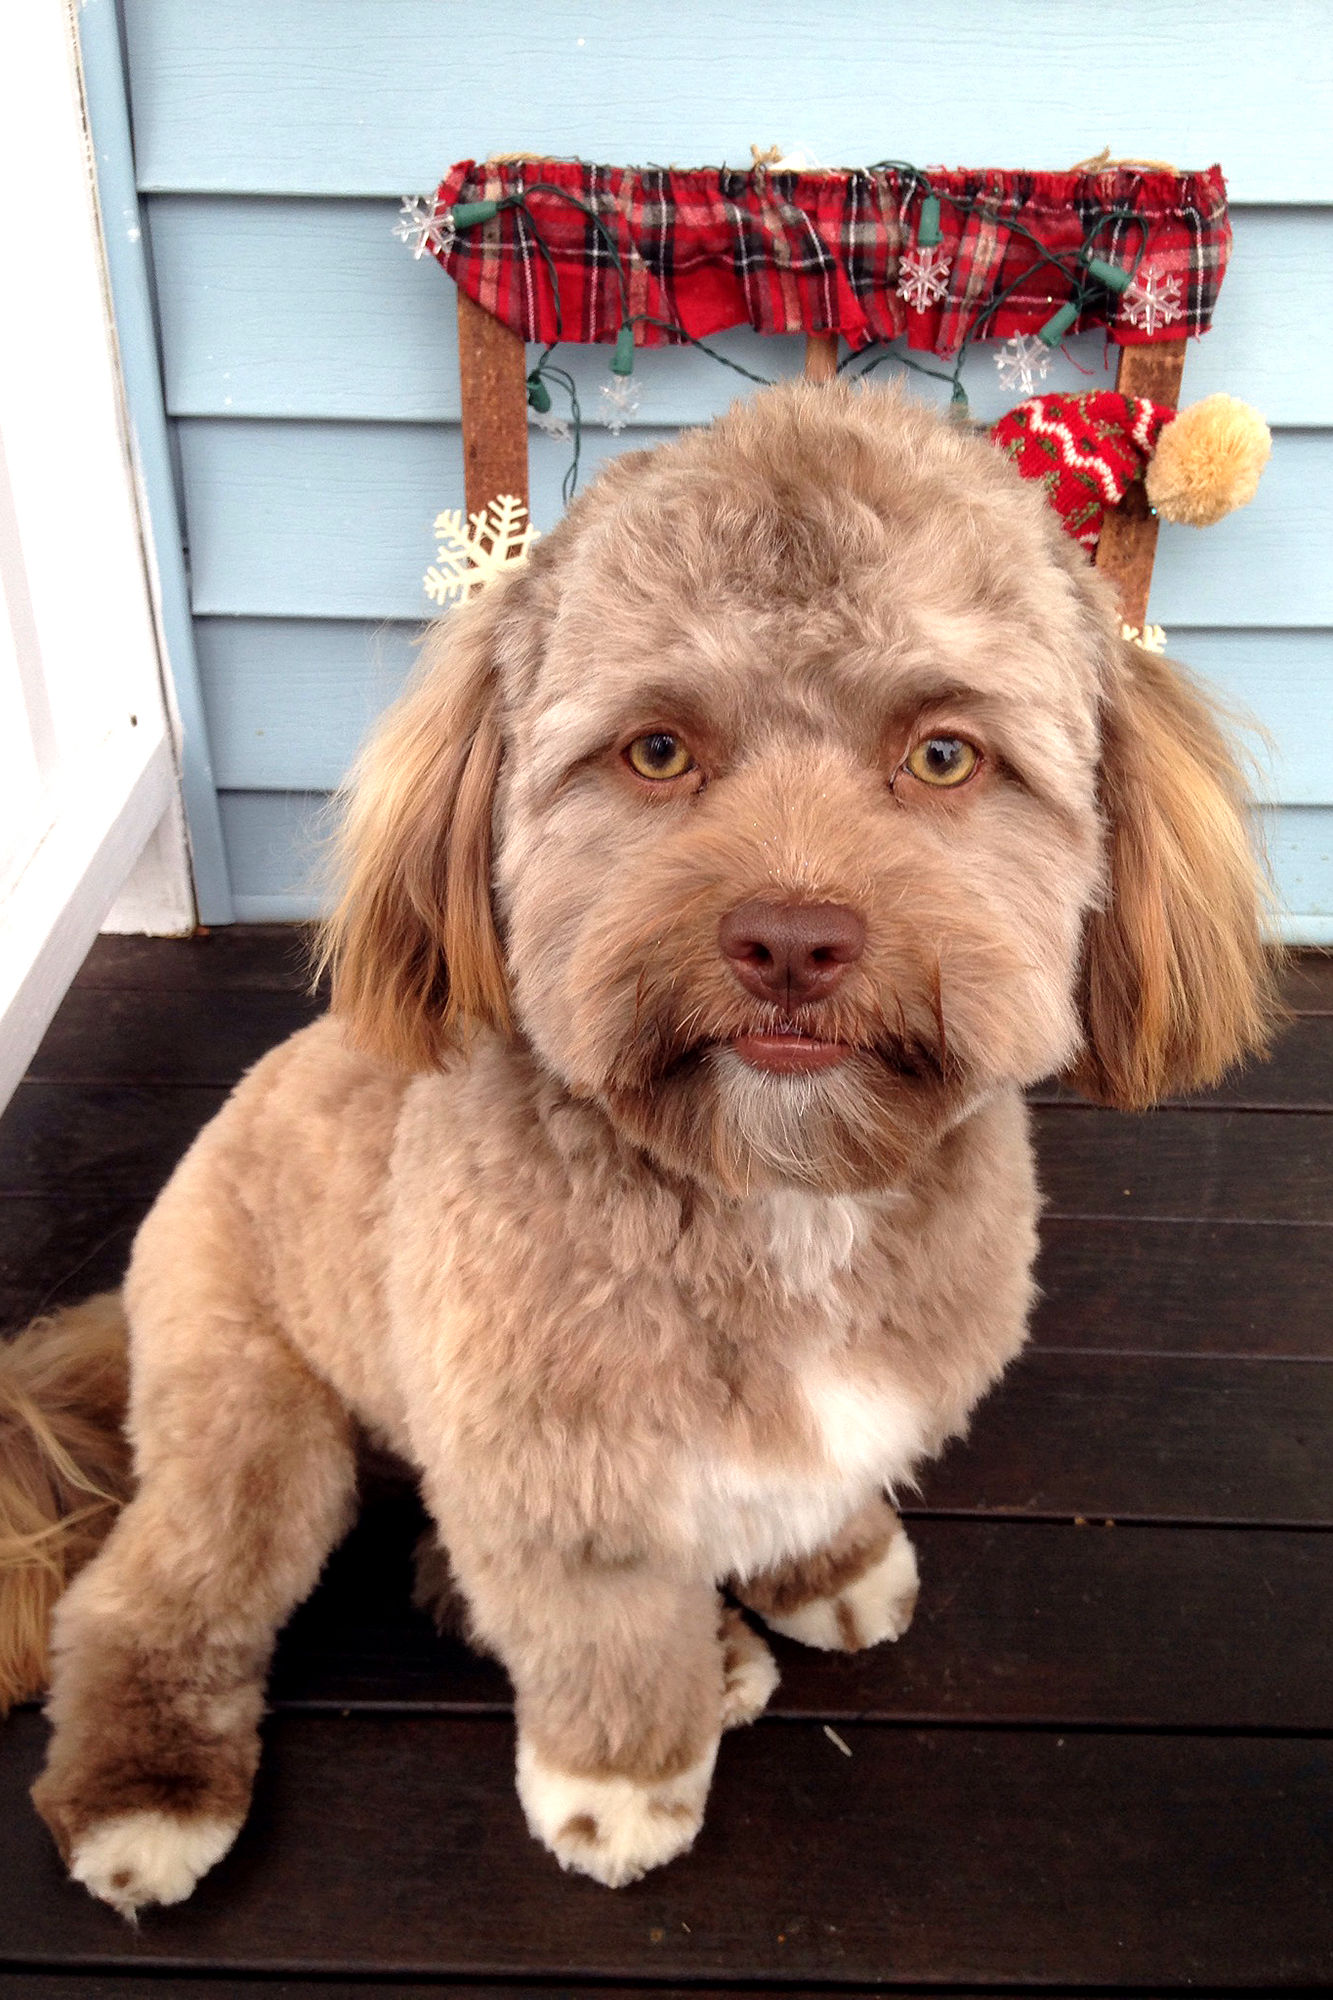 The Internet Is Barking Up a Storm About This Dog with an Incredibly Human Face